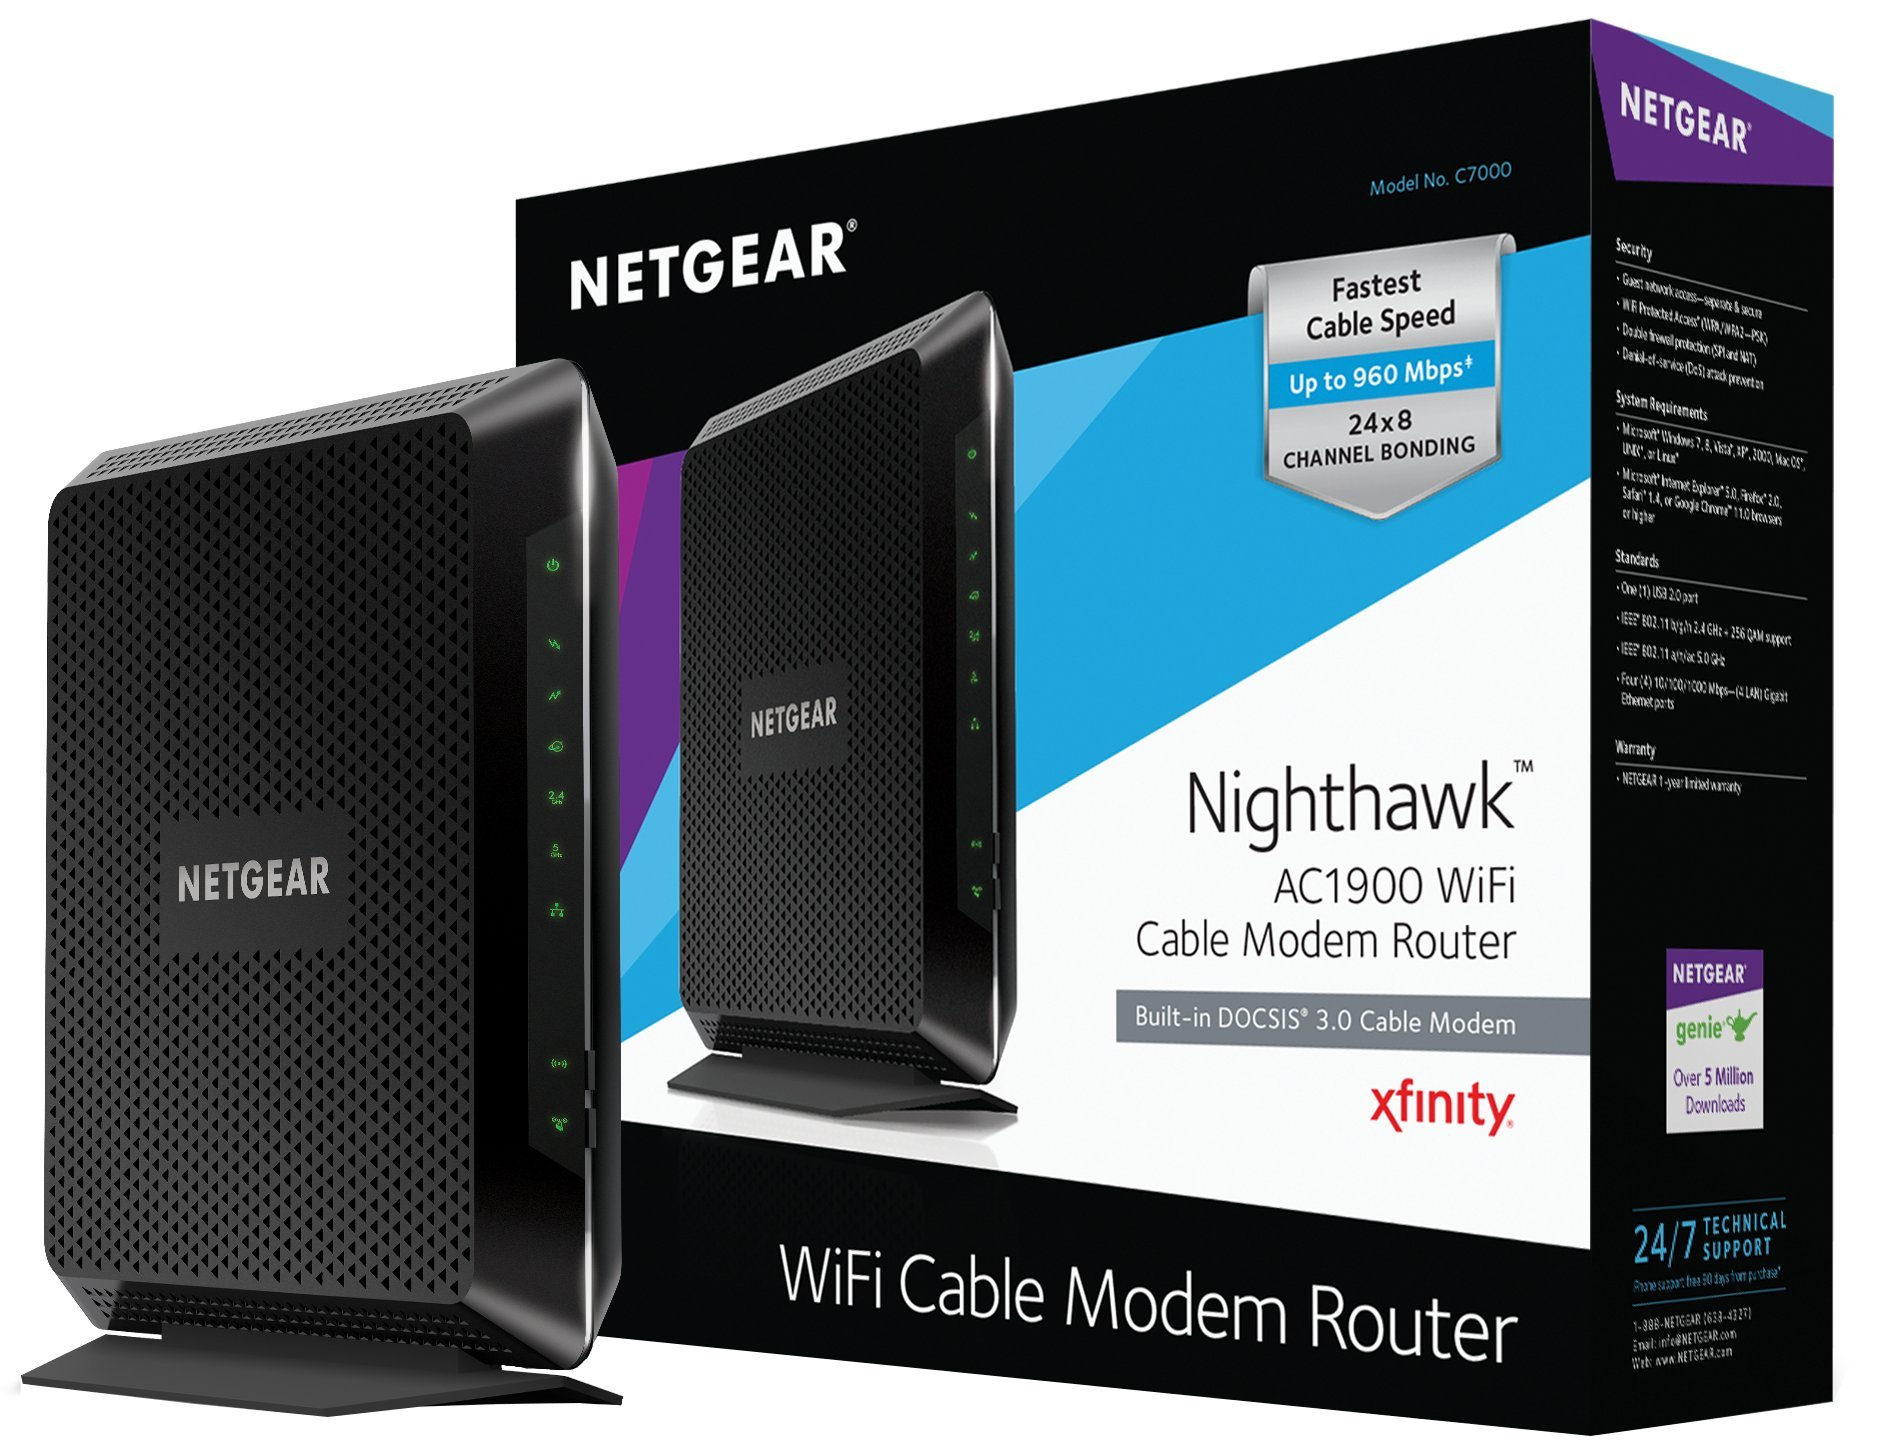 NETGEAR Nighthawk AC1900 (24x8) DOCSIS 3.0 WiFi Cable Modem Router (C7000) Certified for Xfinity from Comcast, Spectrum, Cox, & more by NETGEAR